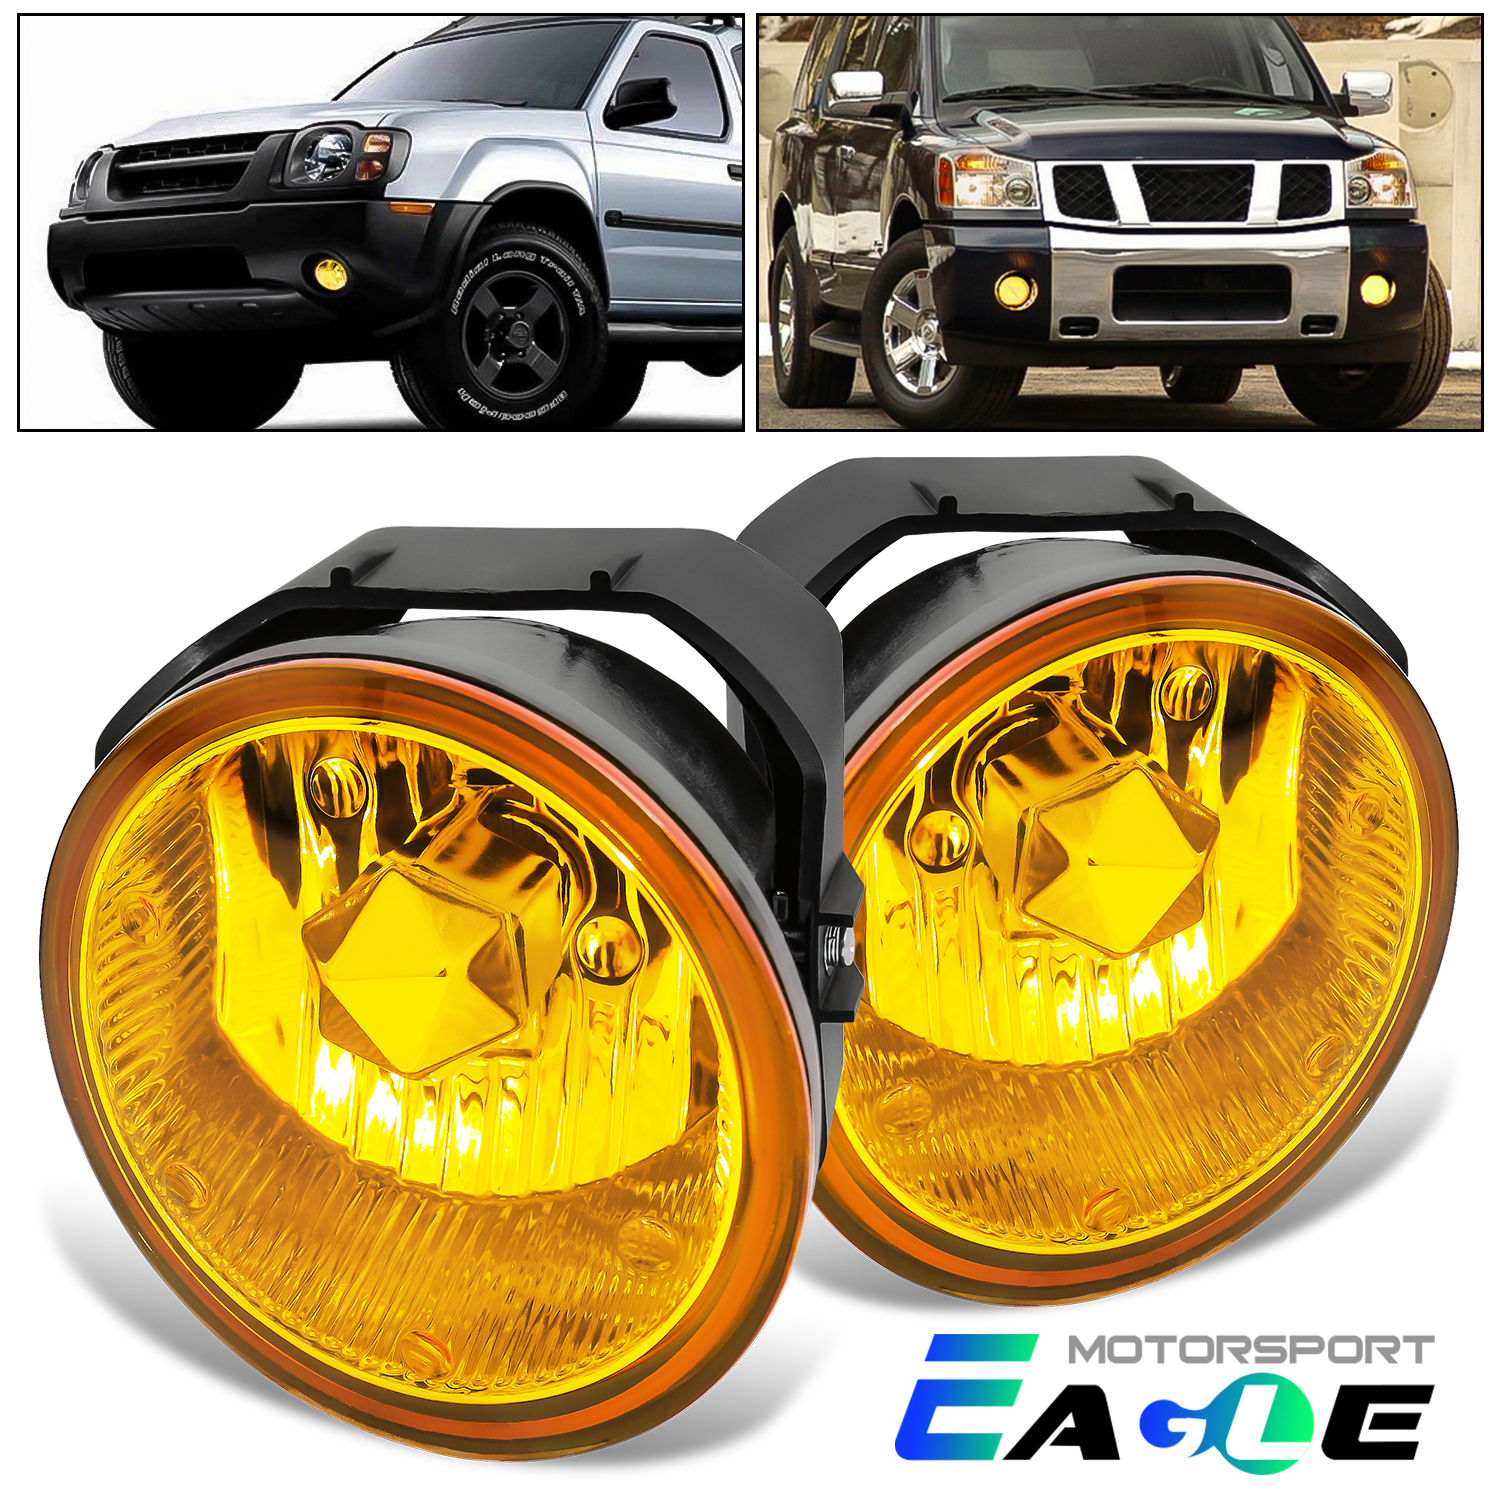 Details about For 2001-2004 Nissan Frontier/02-04 Xterra Yellow Fog on